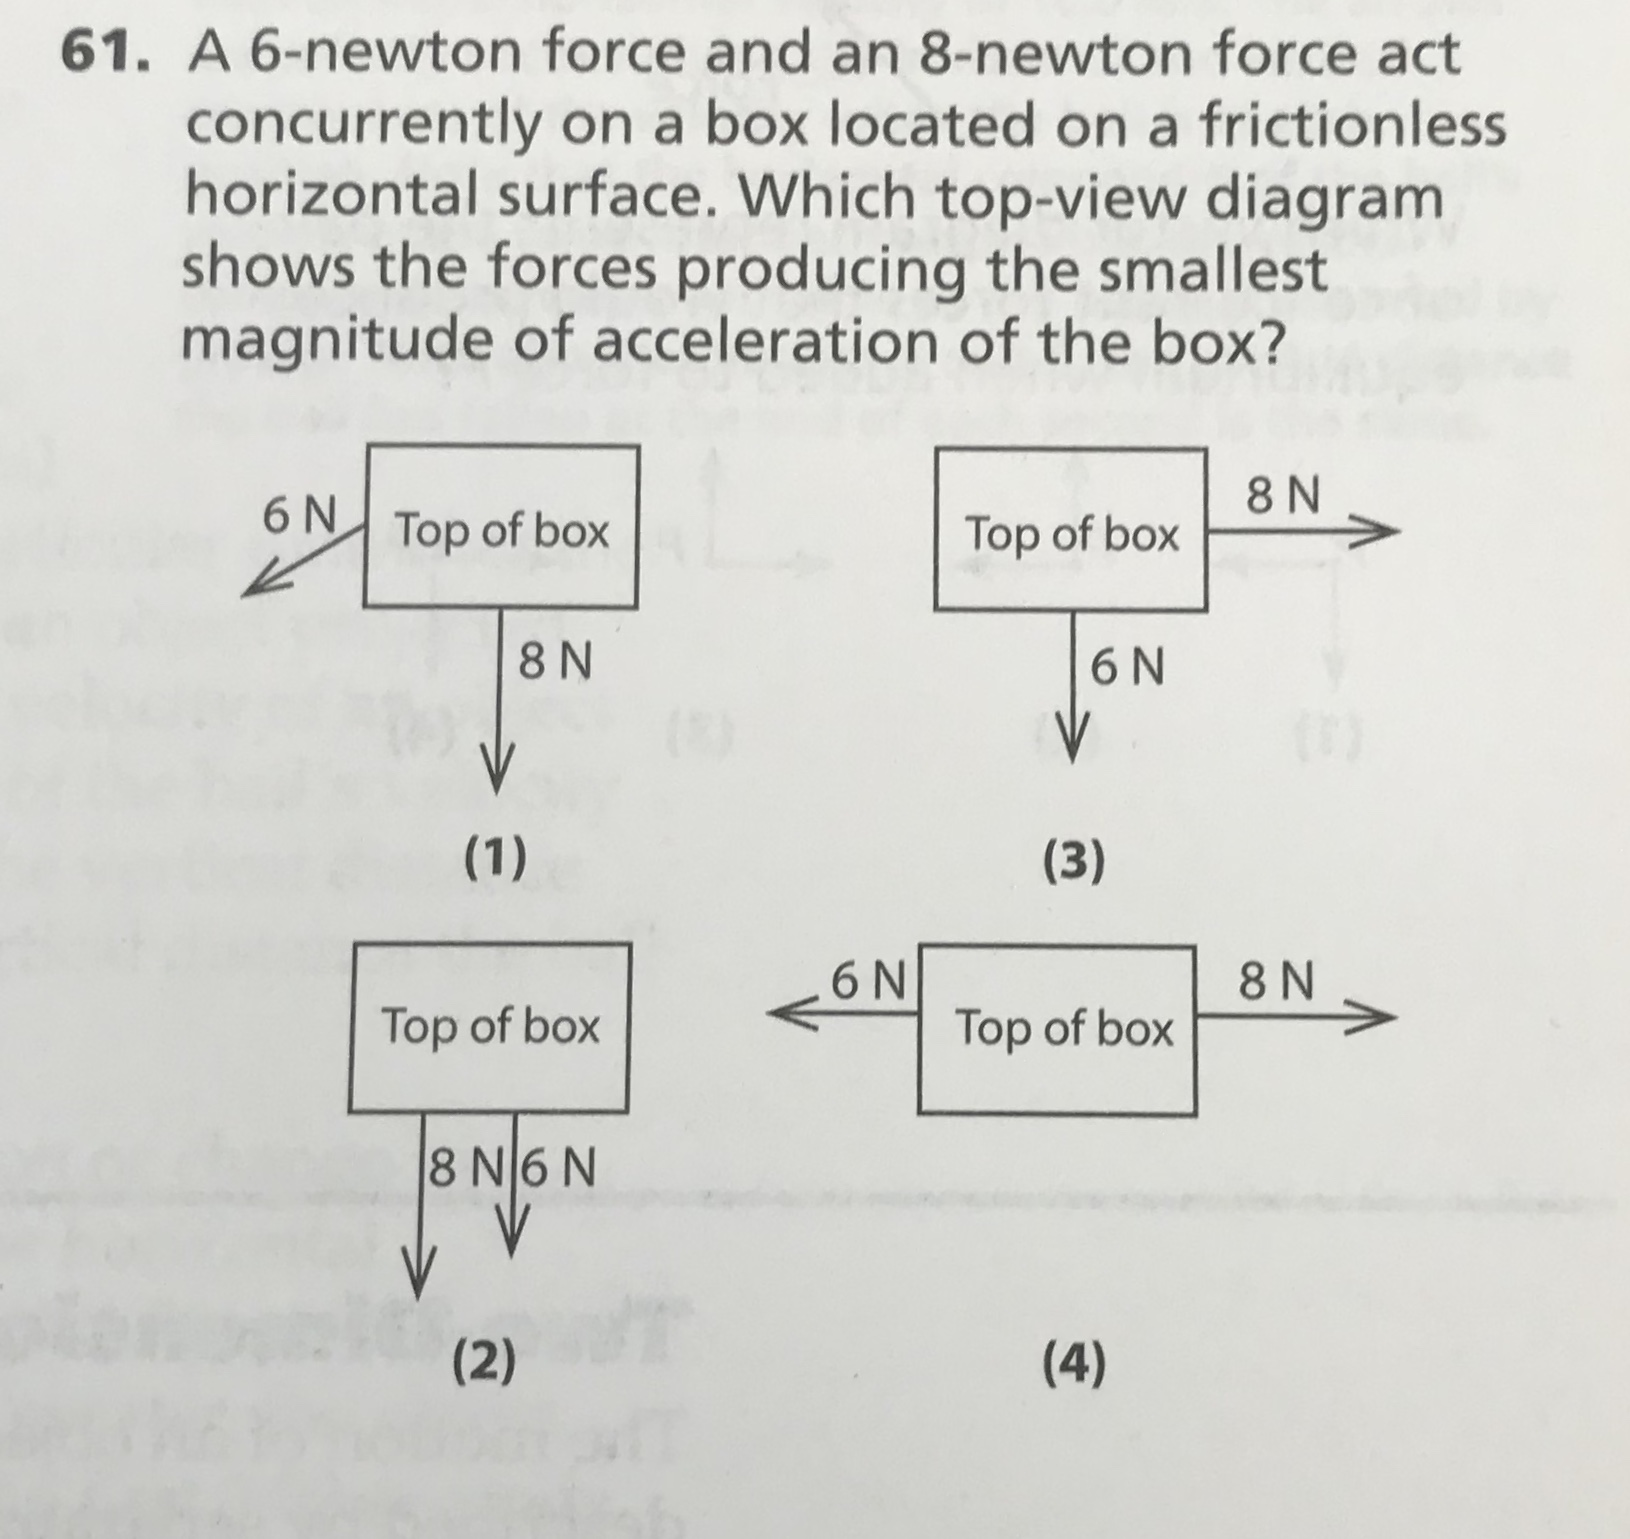 61. A 6-newton force and an 8-newton force act concurrently on a box located on a frictionless horizontal surface. Which top-view diagram shows the forces producing the smallest magnitude of acceleration of the box? 8 N 6 N Top of box Top of box 8 N 6N V (1) (3) 6N Top of box 8 N Top of box 8 N6 N (2) (4) IN